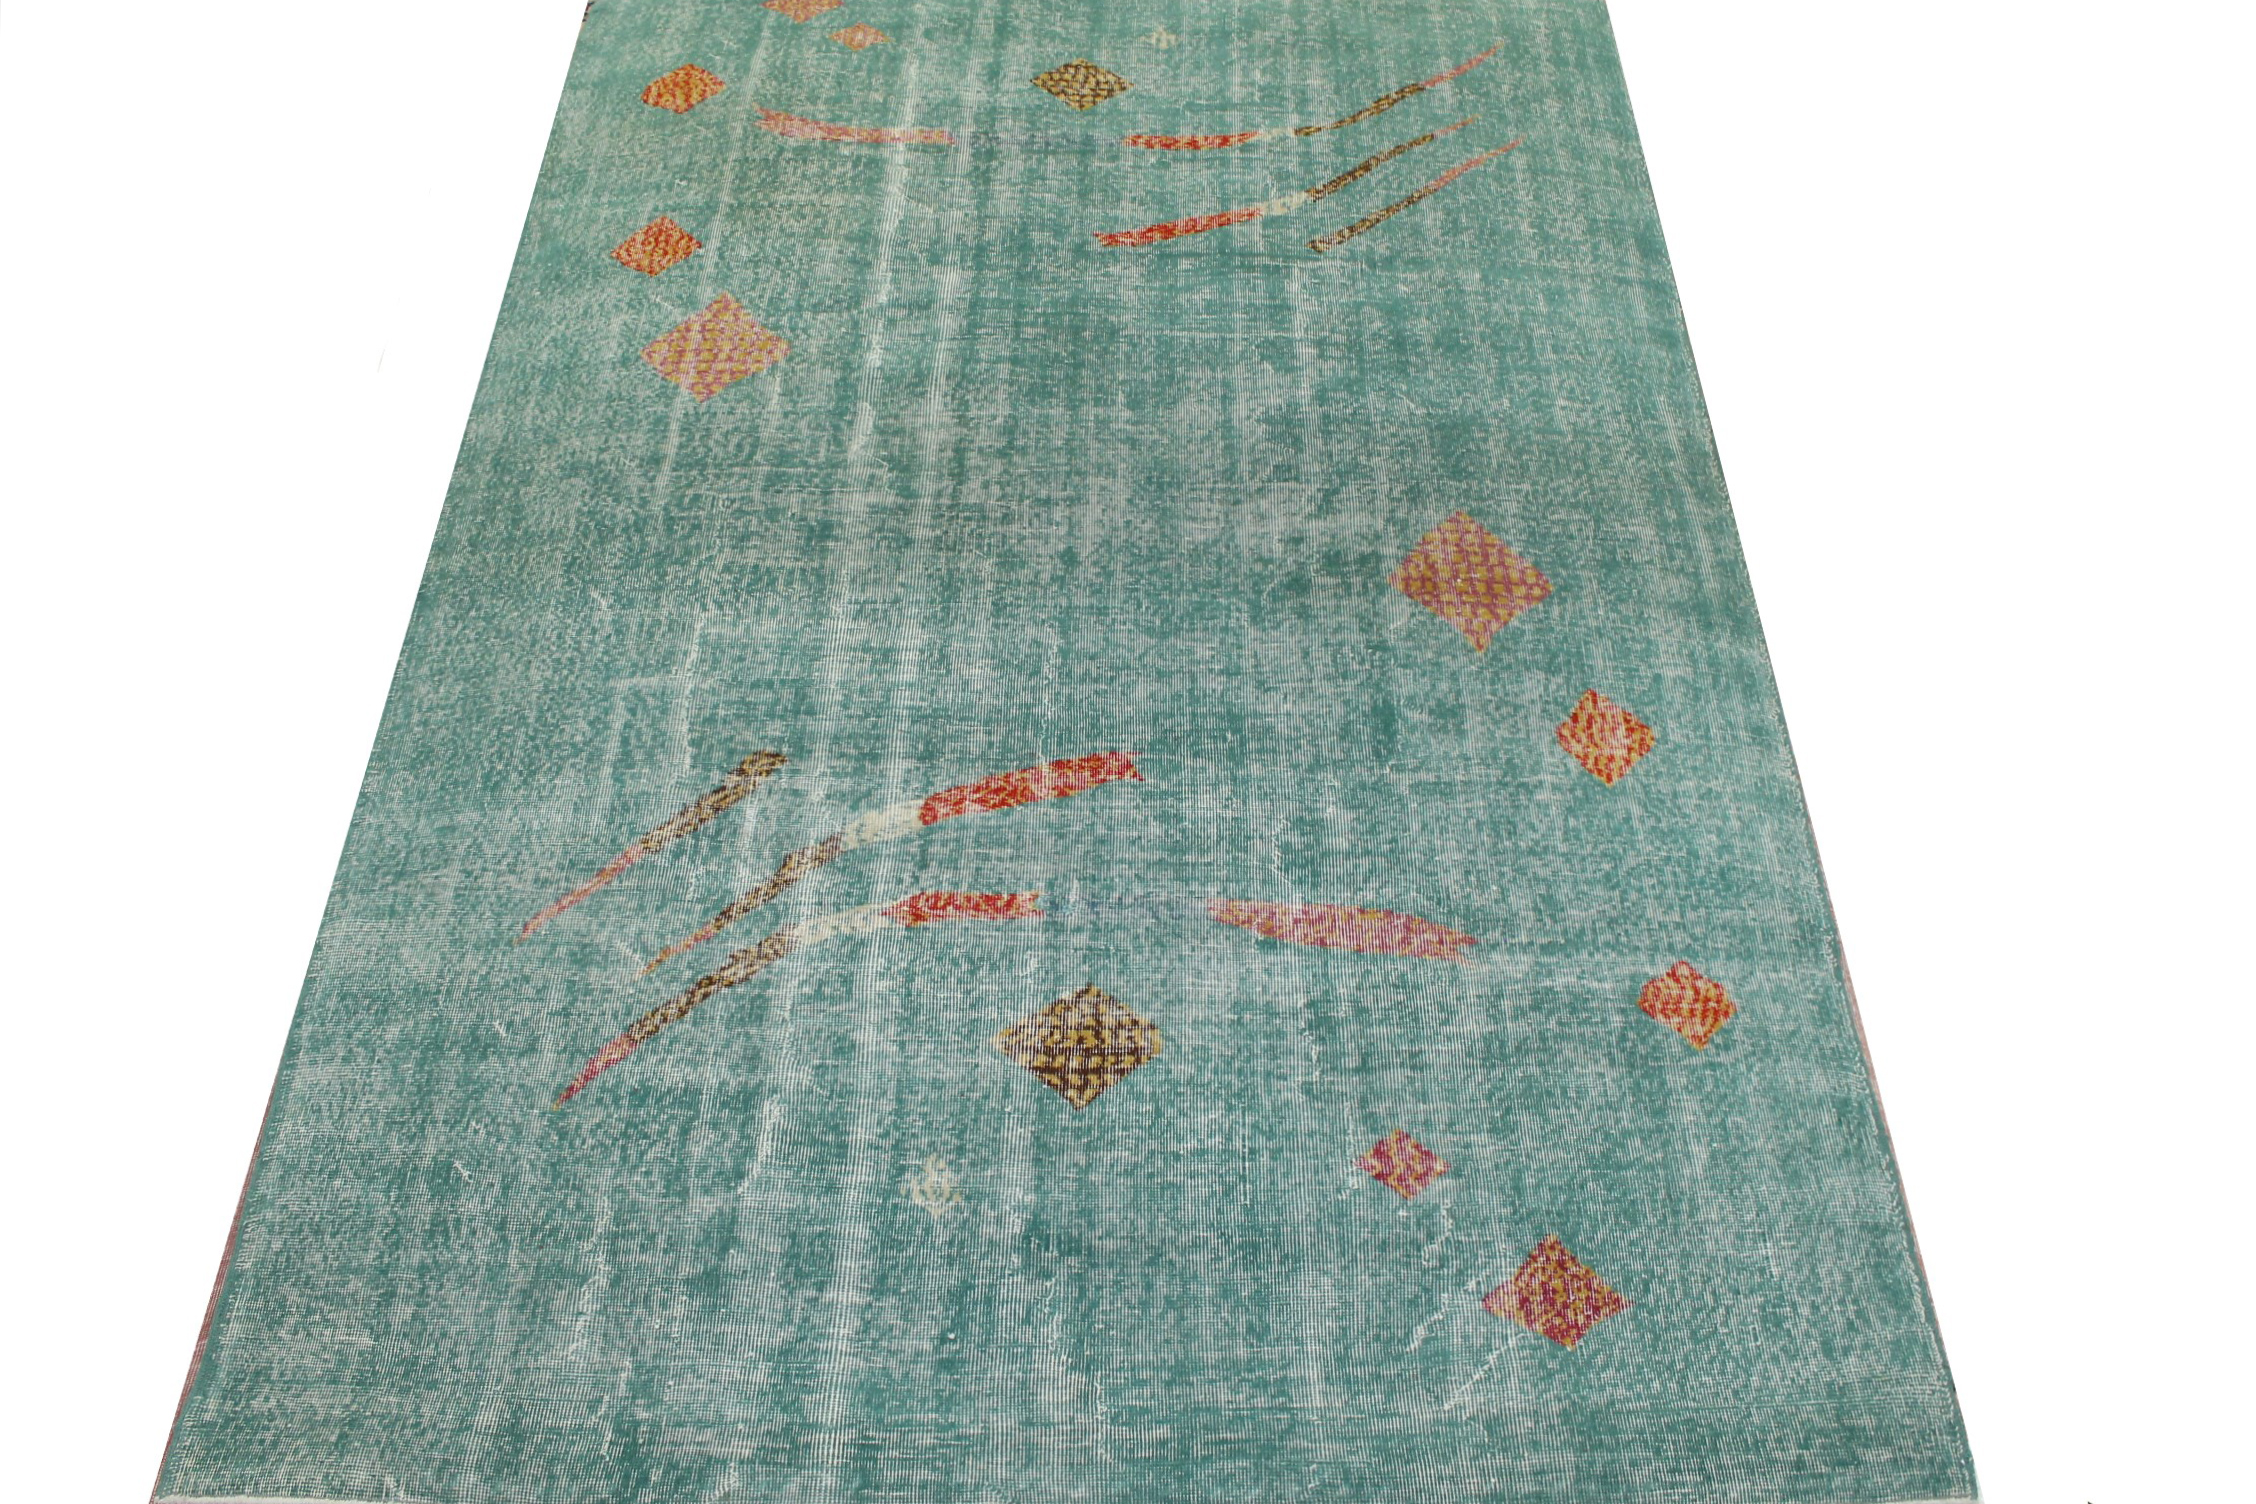 8x10 Contemporary Hand Knotted Wool Area Rug - MR023454